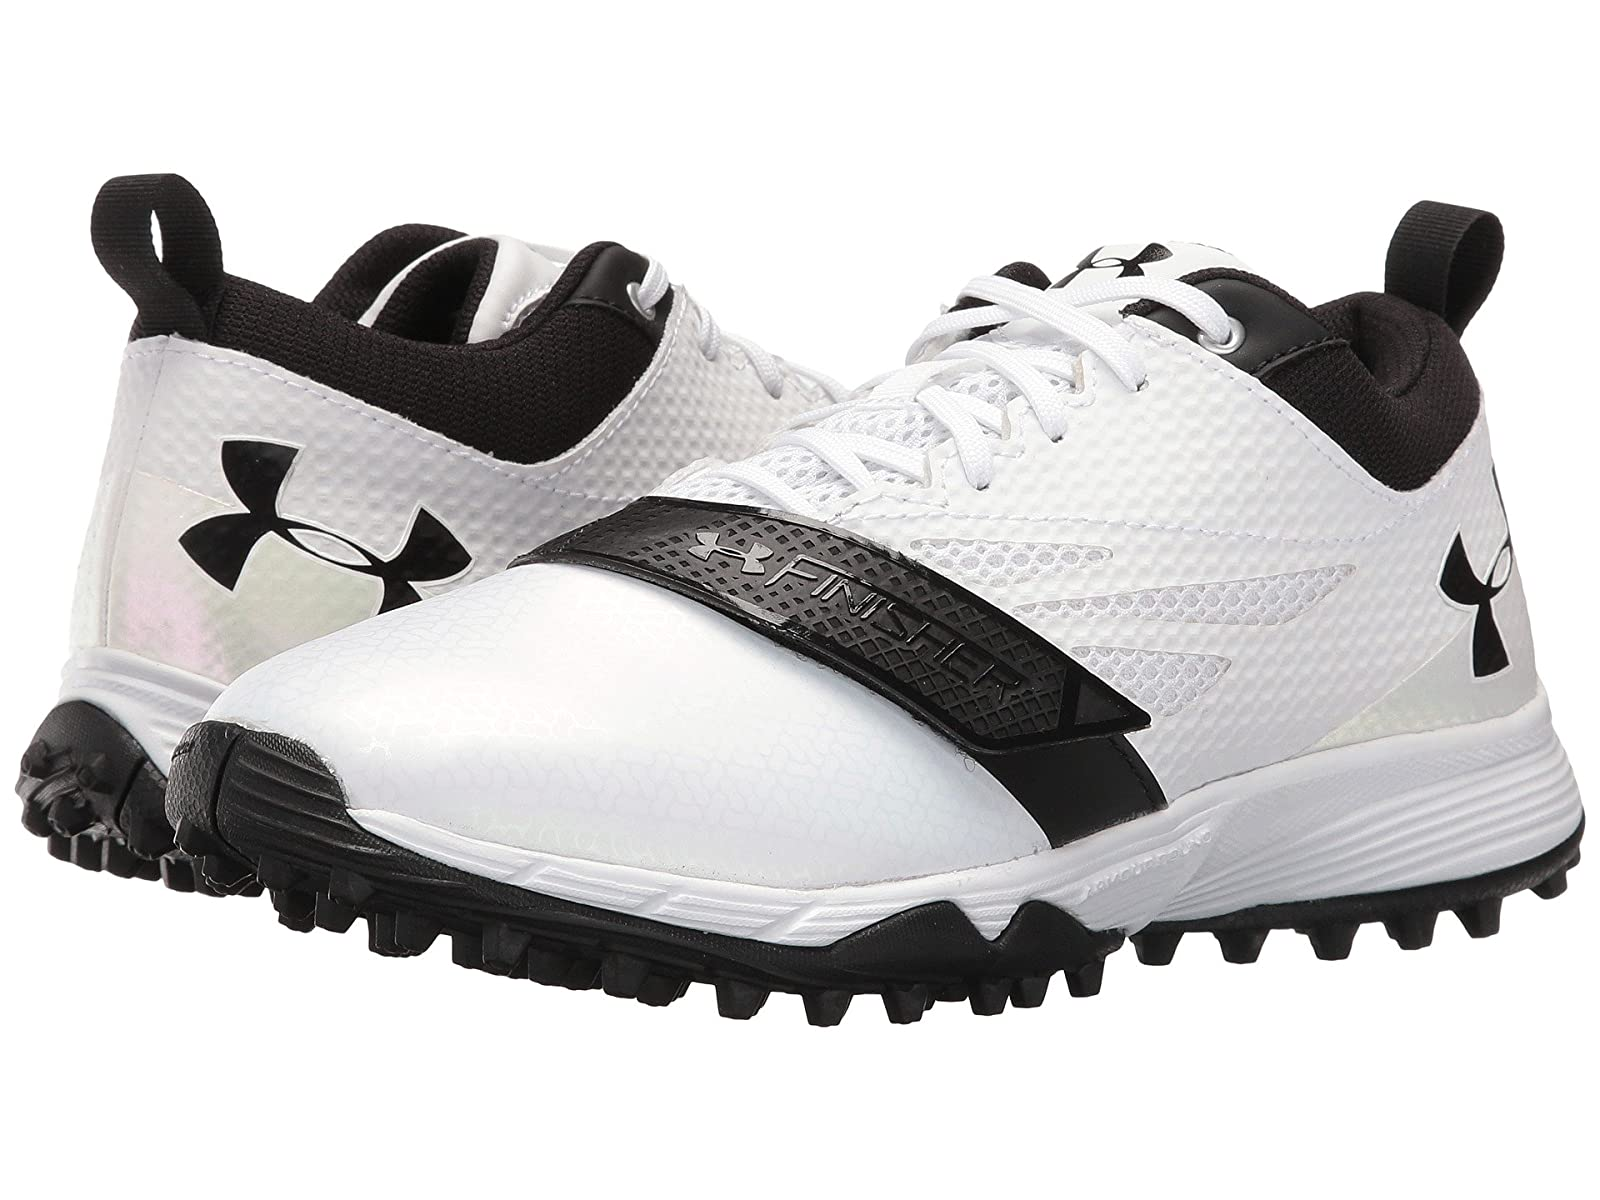 Under Armour UA LAX Finisher TurfCheap and distinctive eye-catching shoes